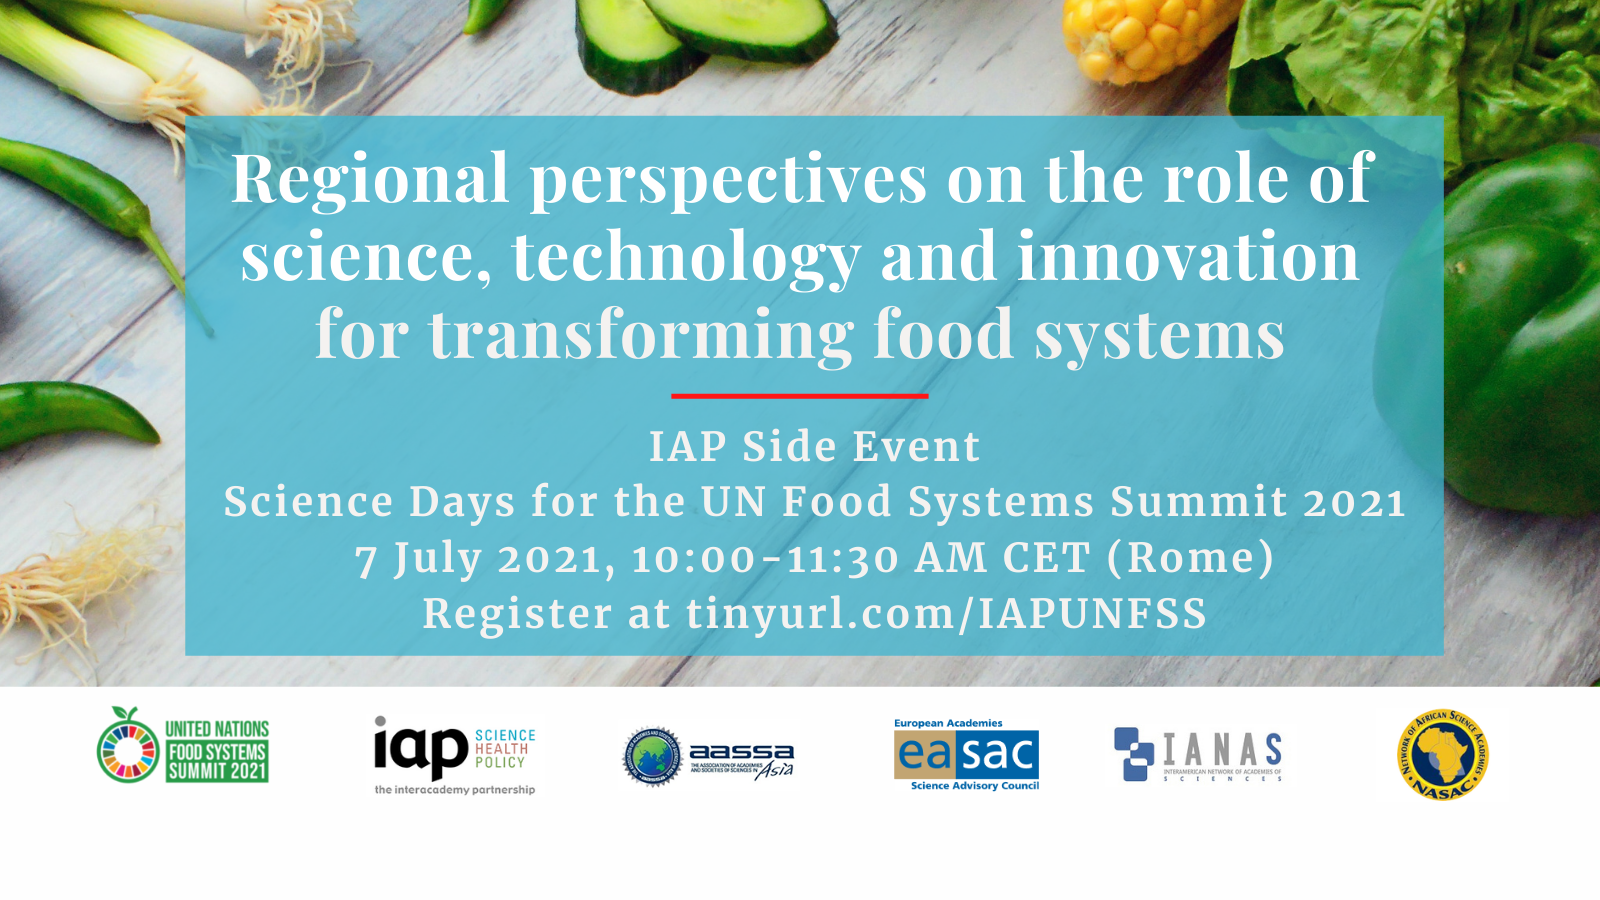 Science Days - UN Food Systems Summit